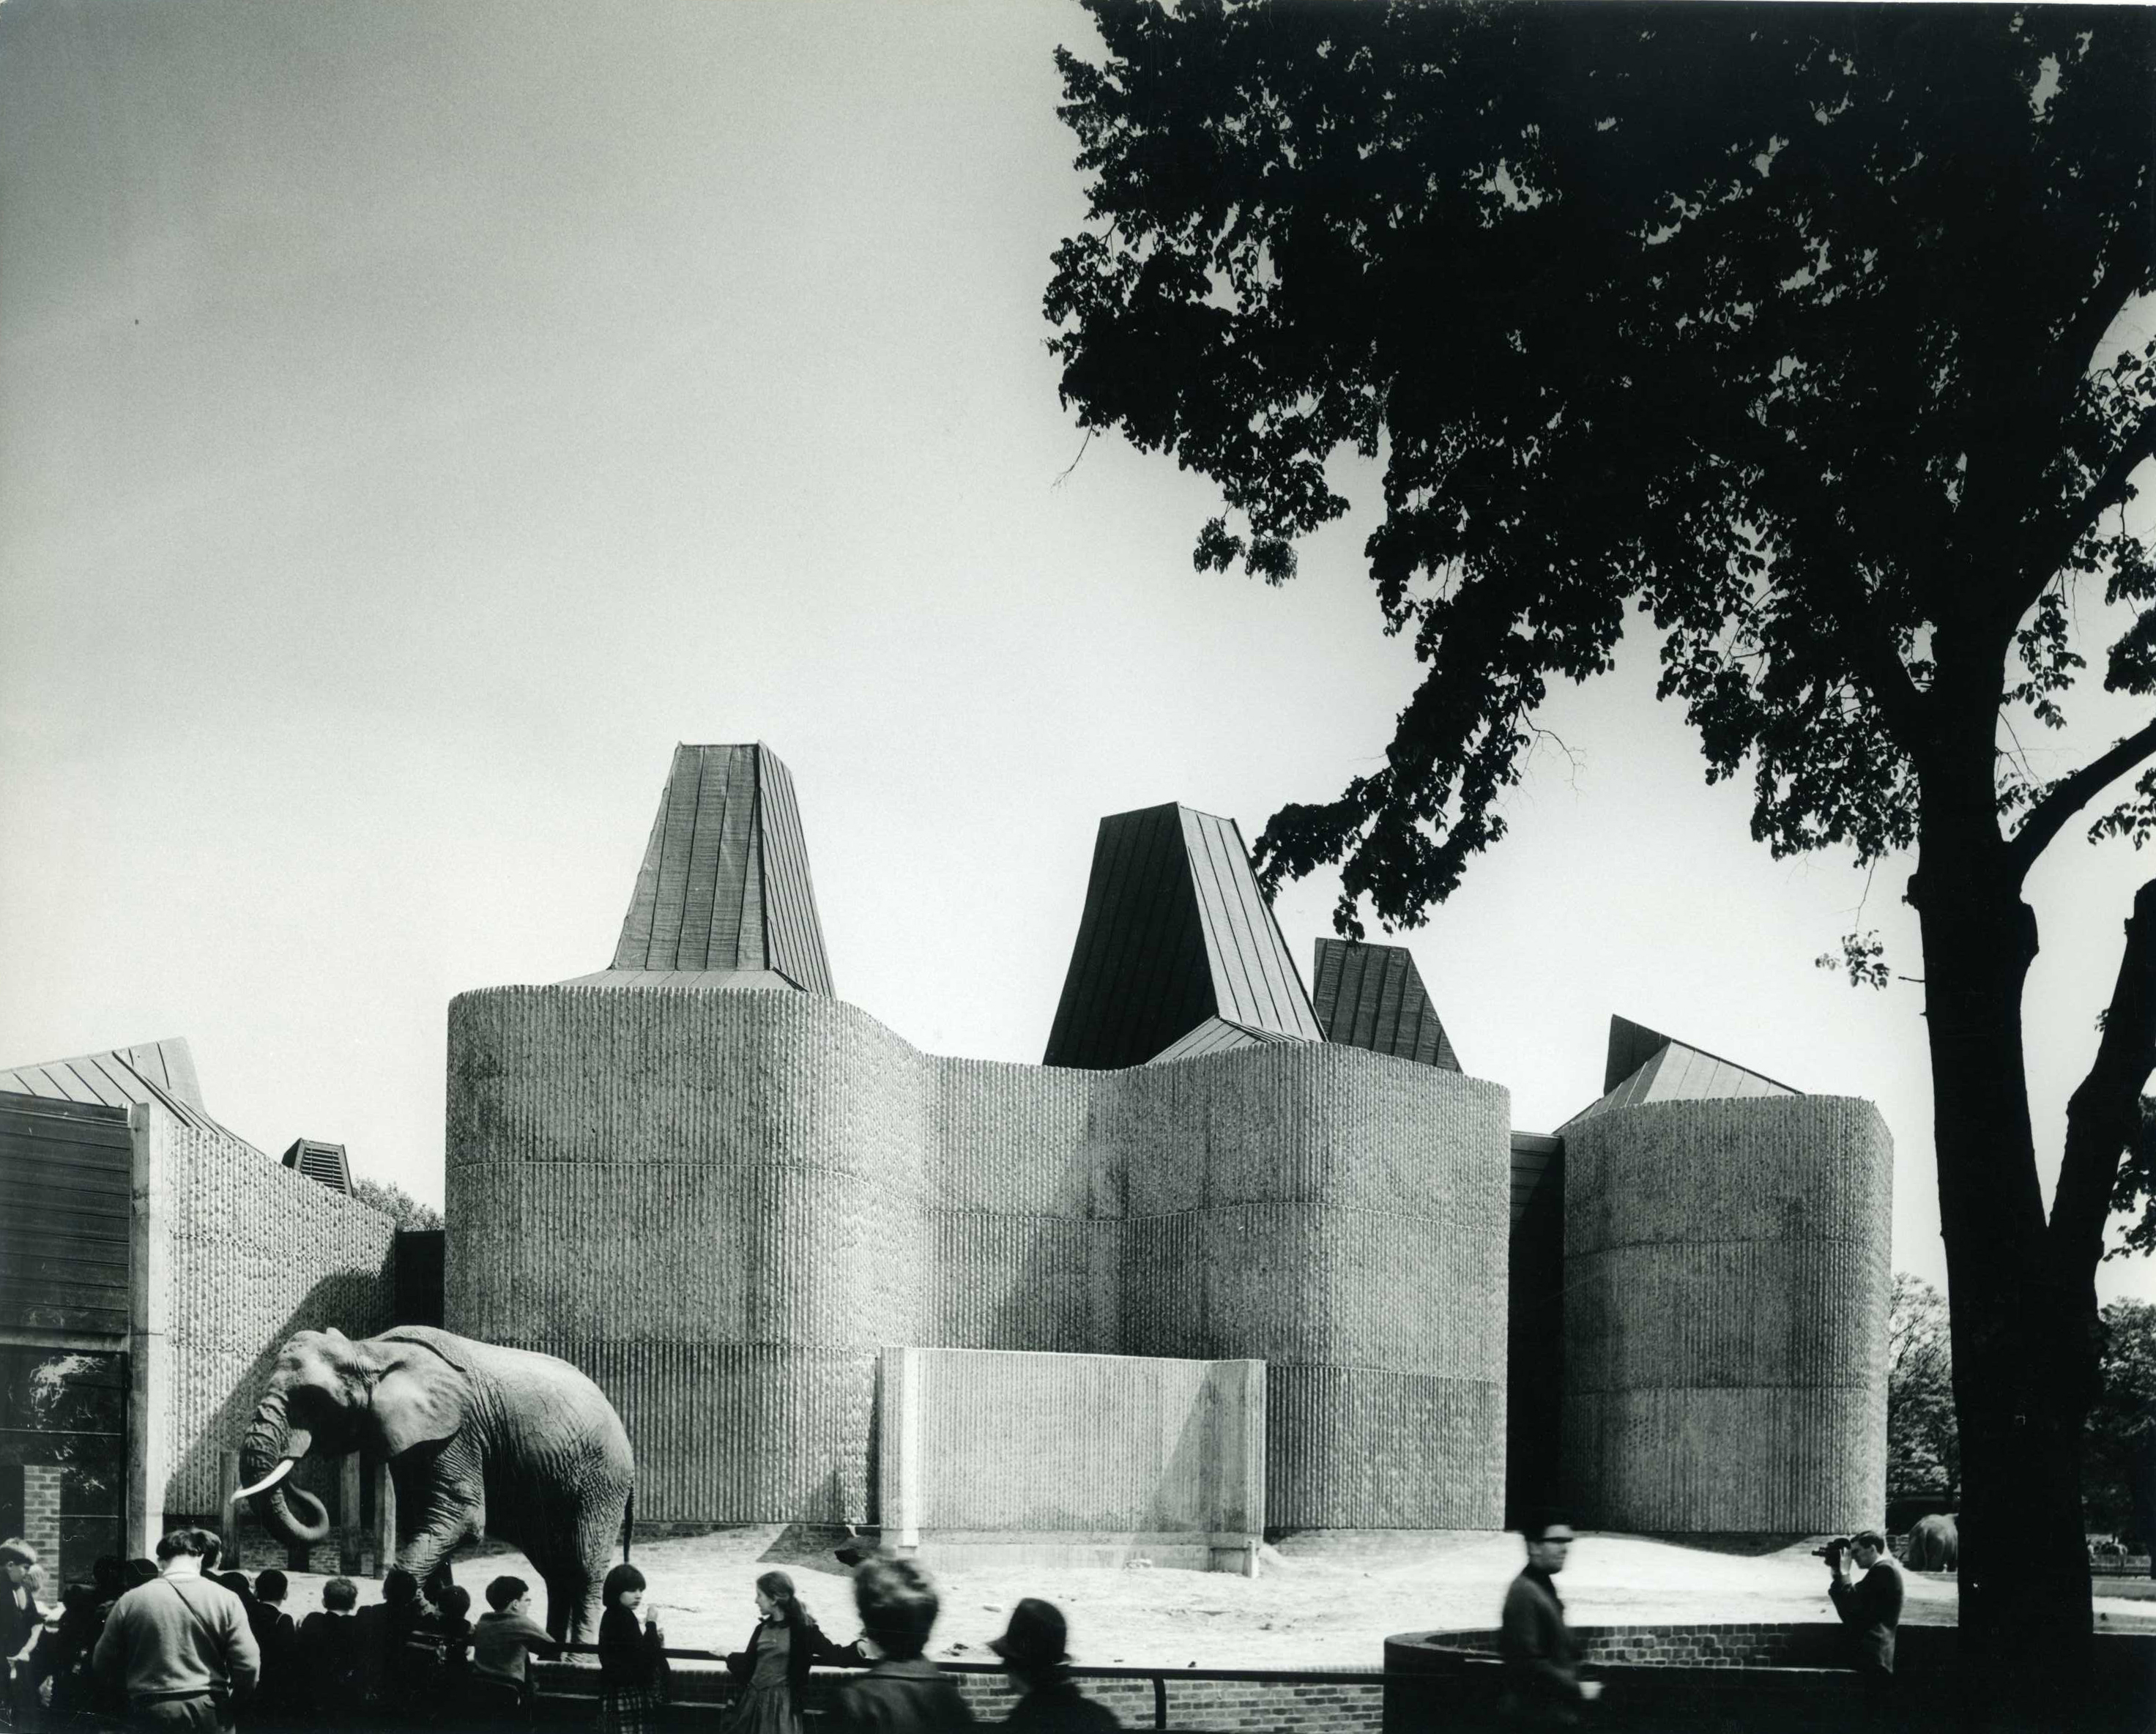 The Elephant House designed by Architects, Casson Conder Partnership. Elephant in front of pavillion with tree, photo by Henk Snoek, 1965. Making Nature.